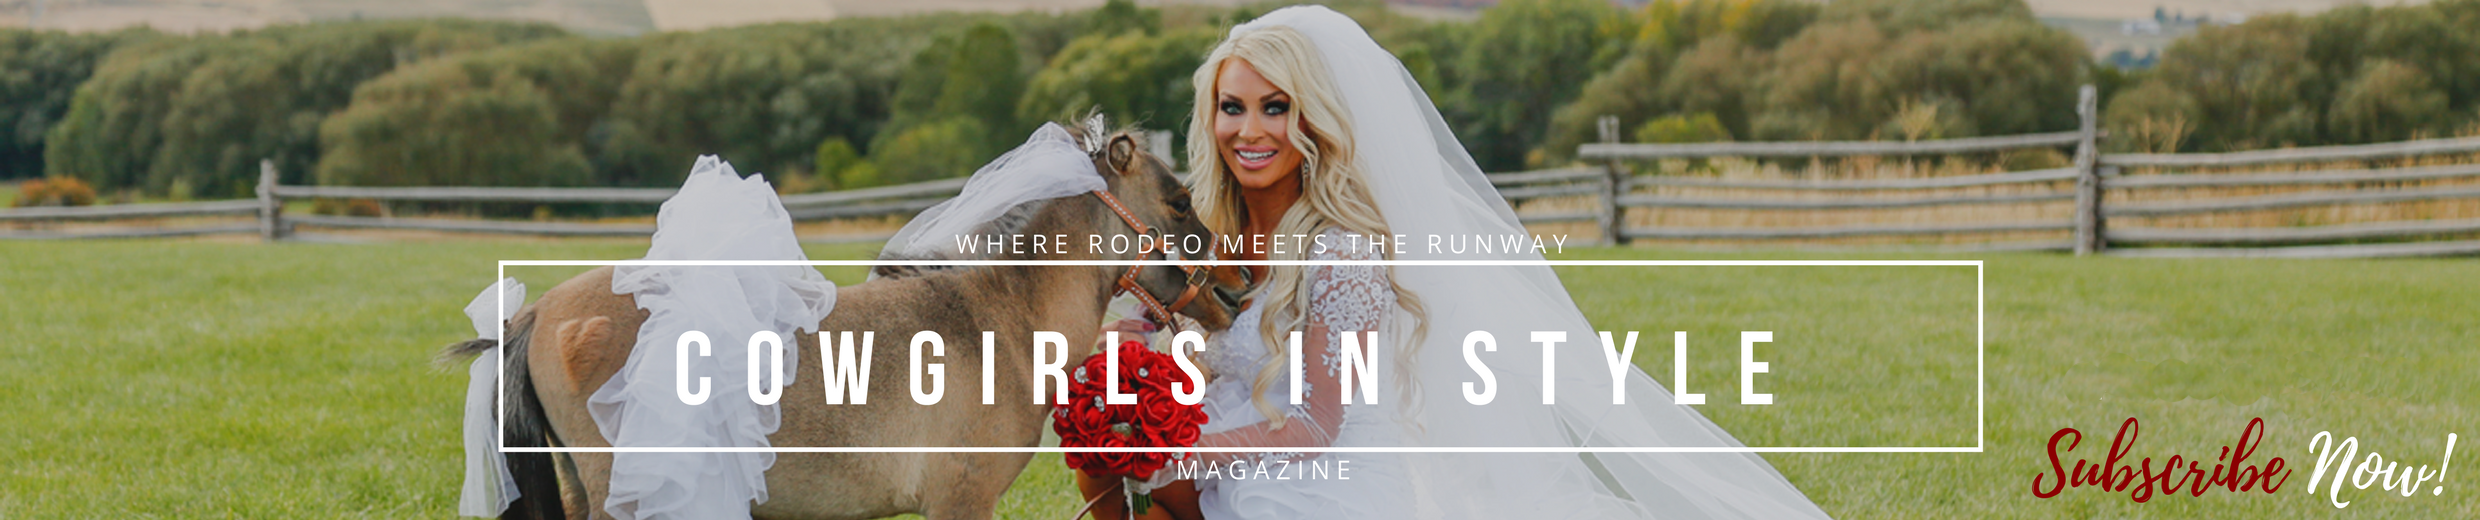 We're featuring Heartland - Cowgirls In Style Magazine